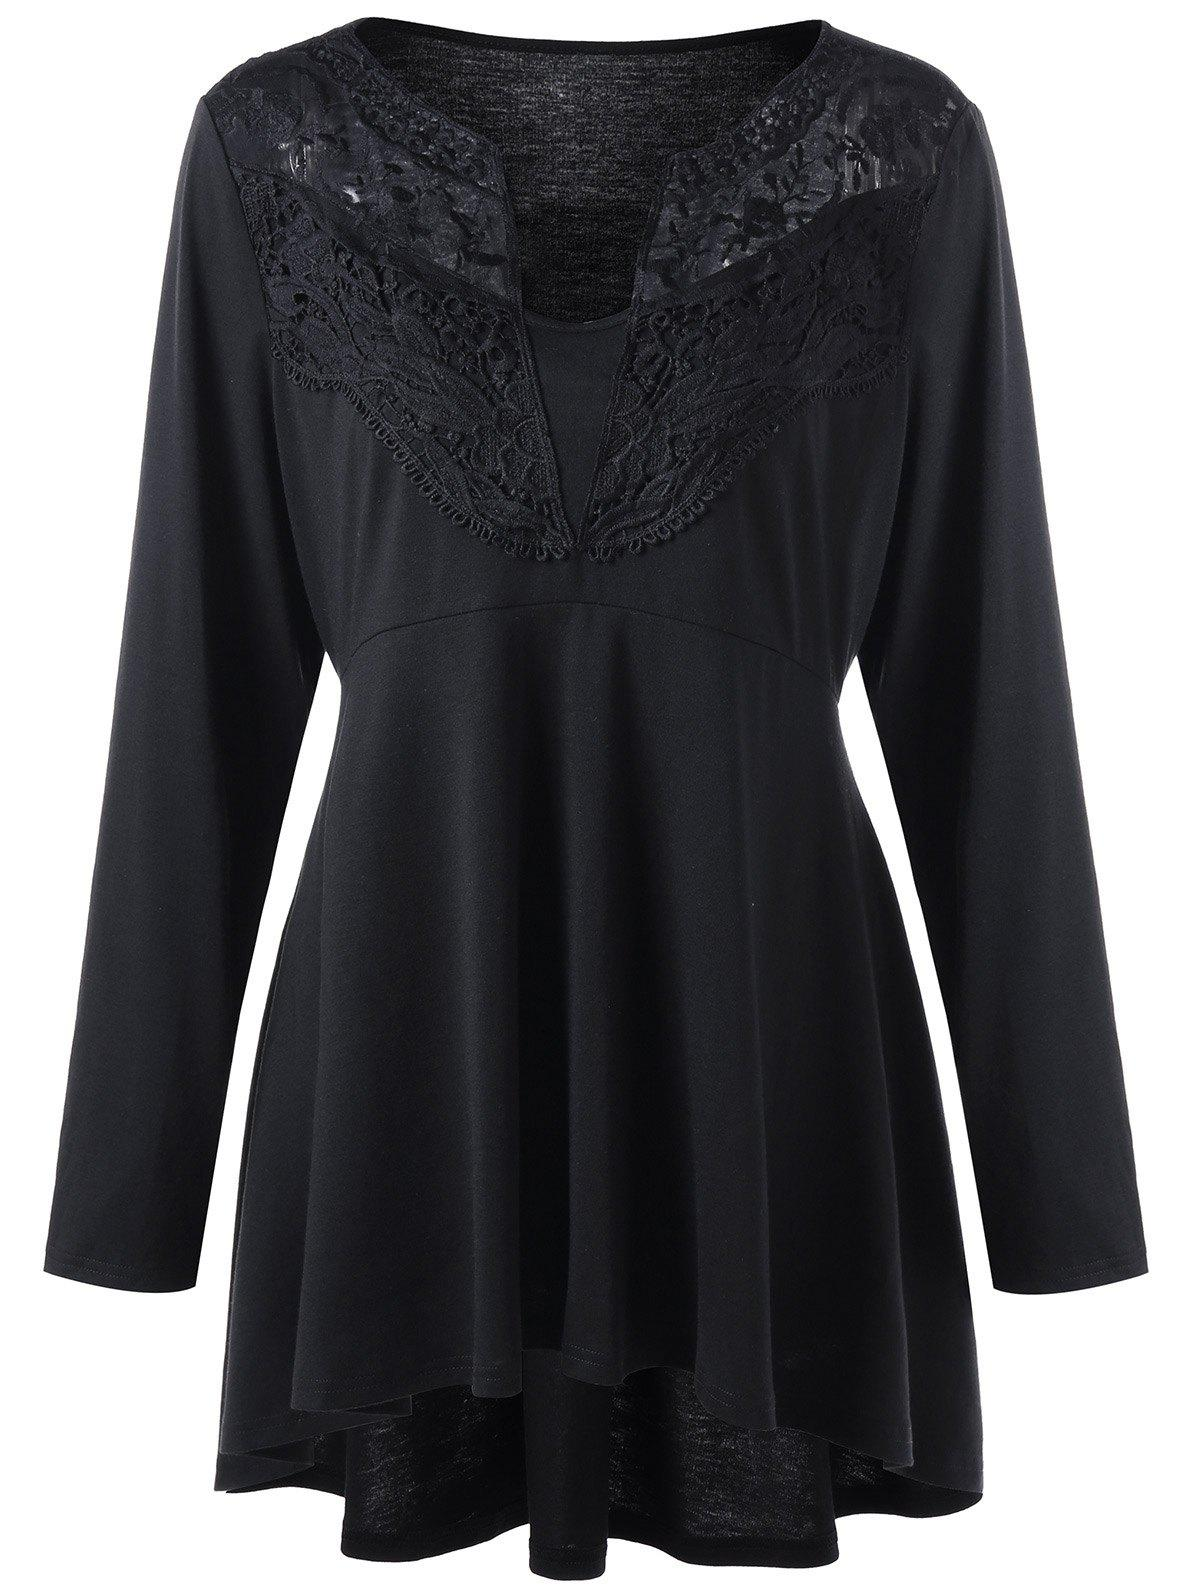 Plus Size Lace Trim High Low Hem Top - BLACK XL